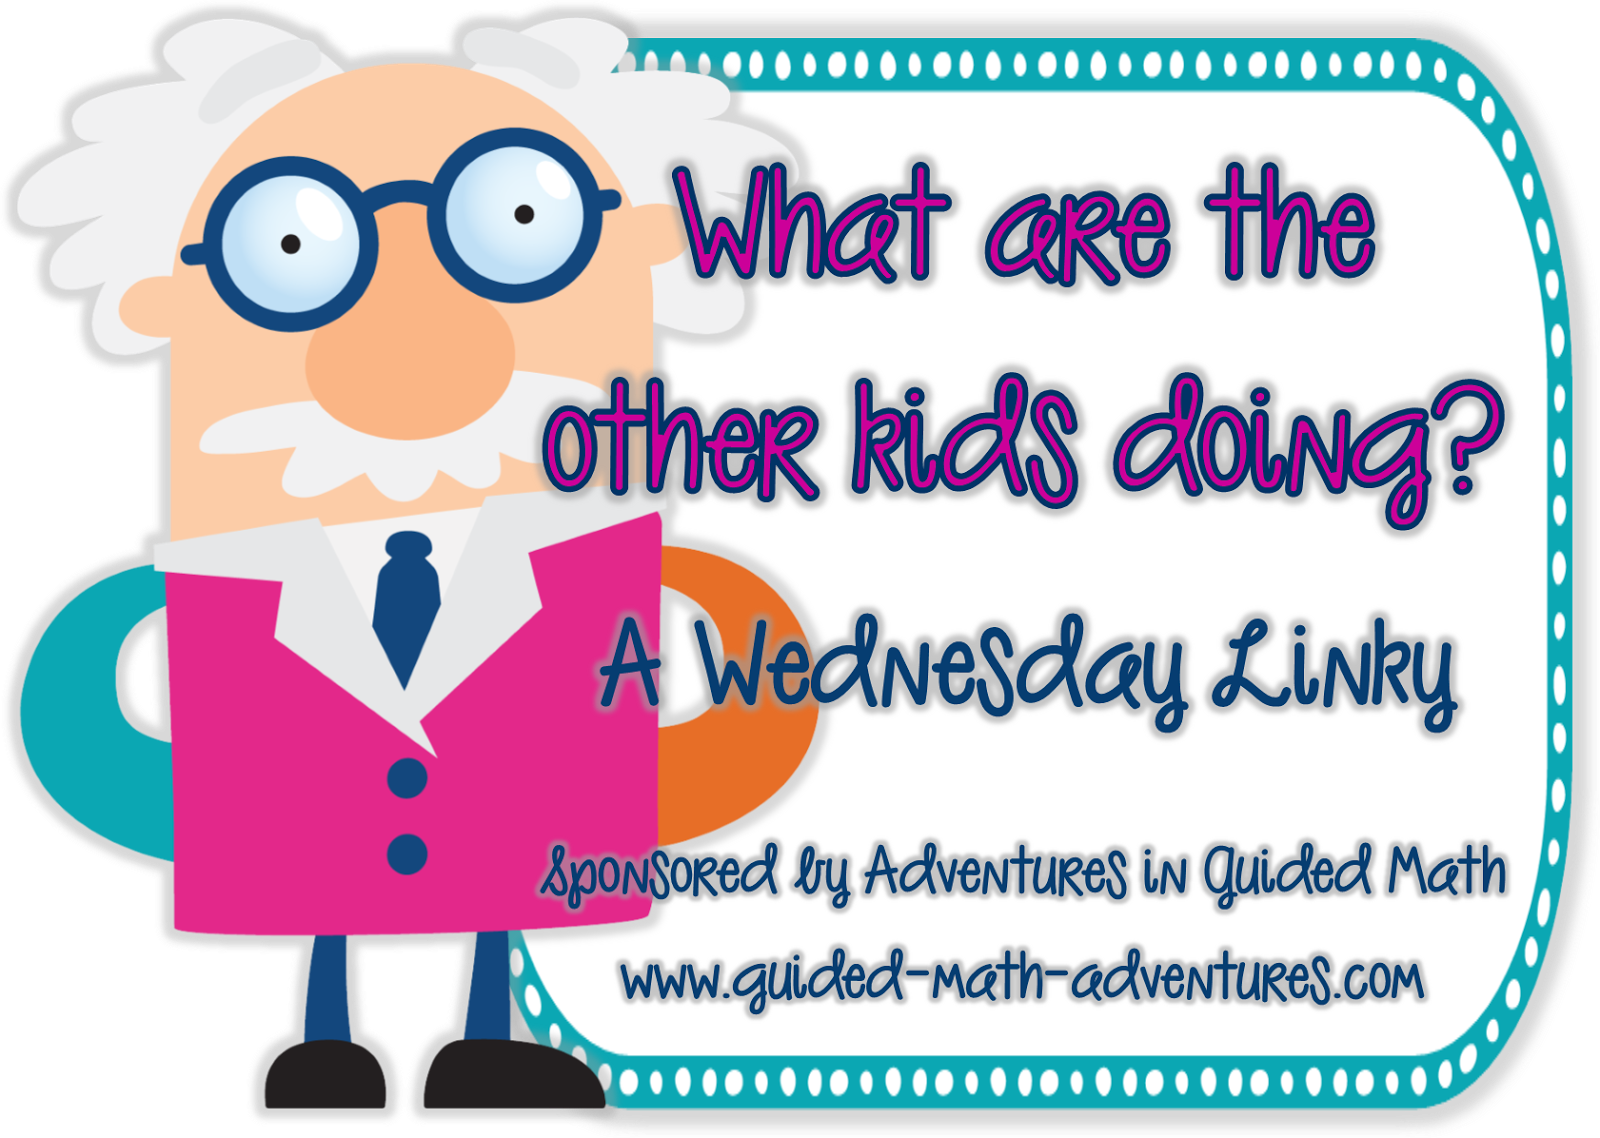 http://www.guided-math-adventures.com/p/what-are-other-kids-doing-wednesday.html